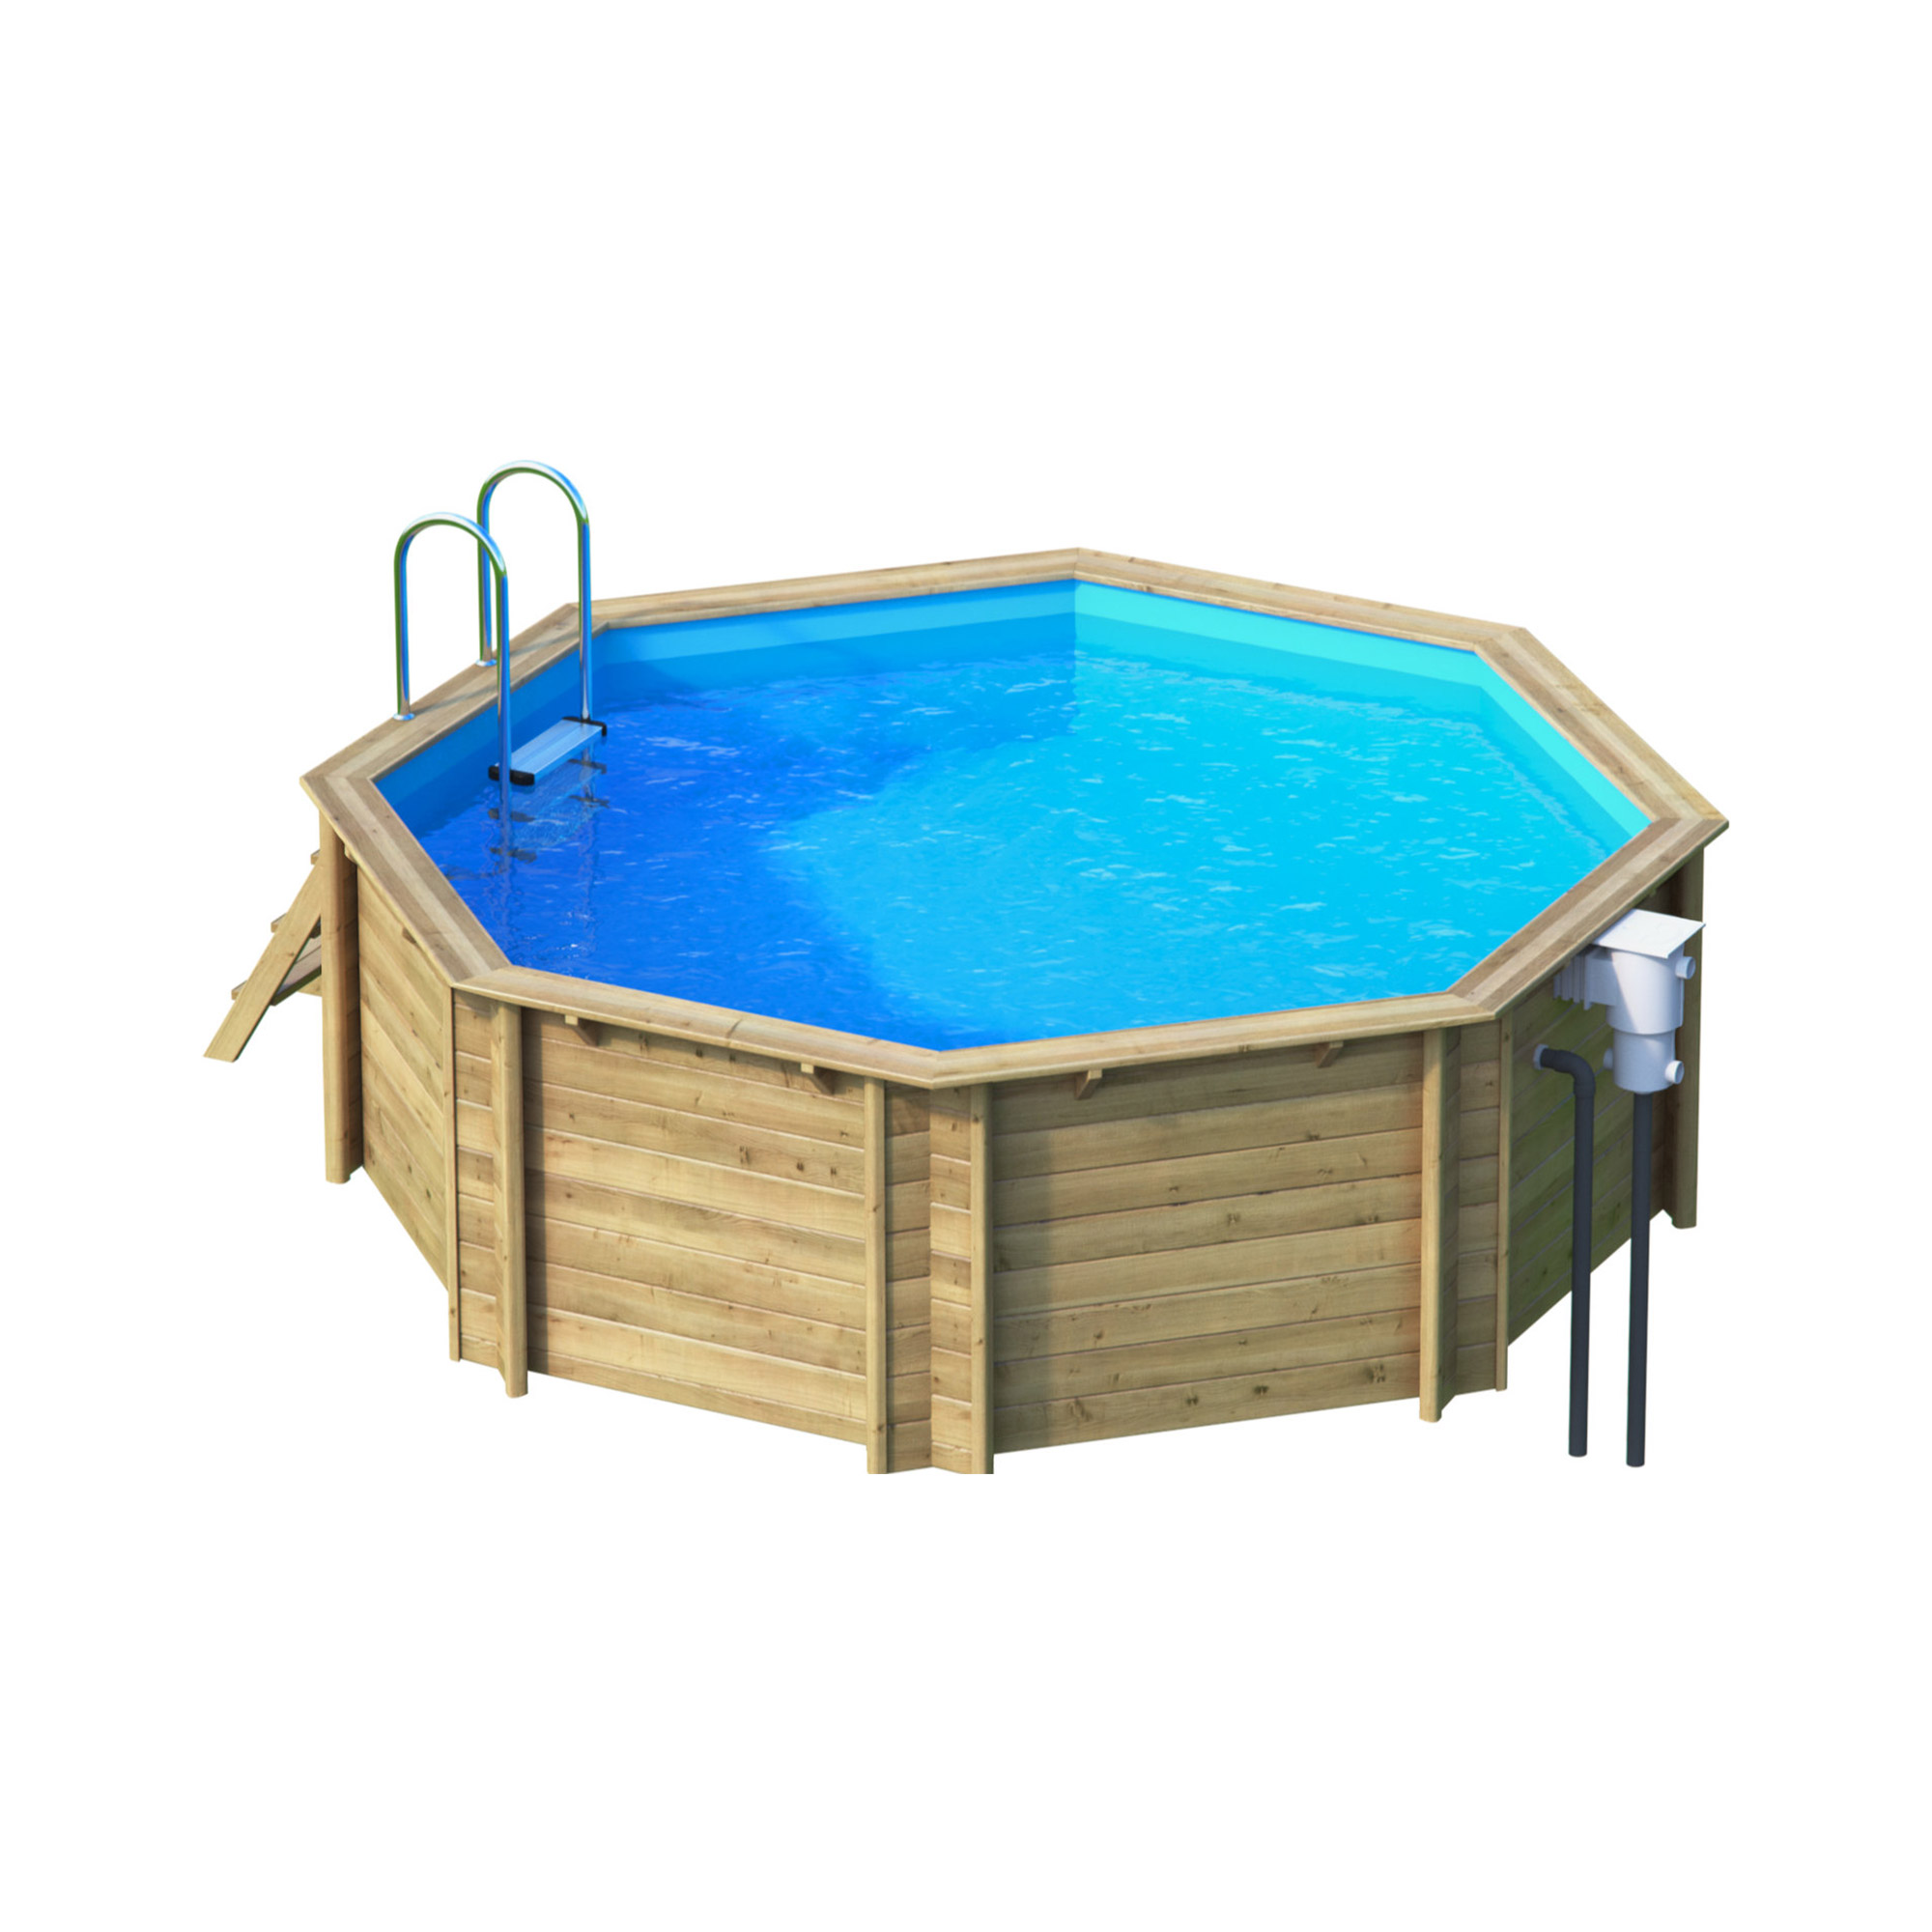 Piscine bois octogonale hors sol semi enterr e for Piscine tropic octo 414